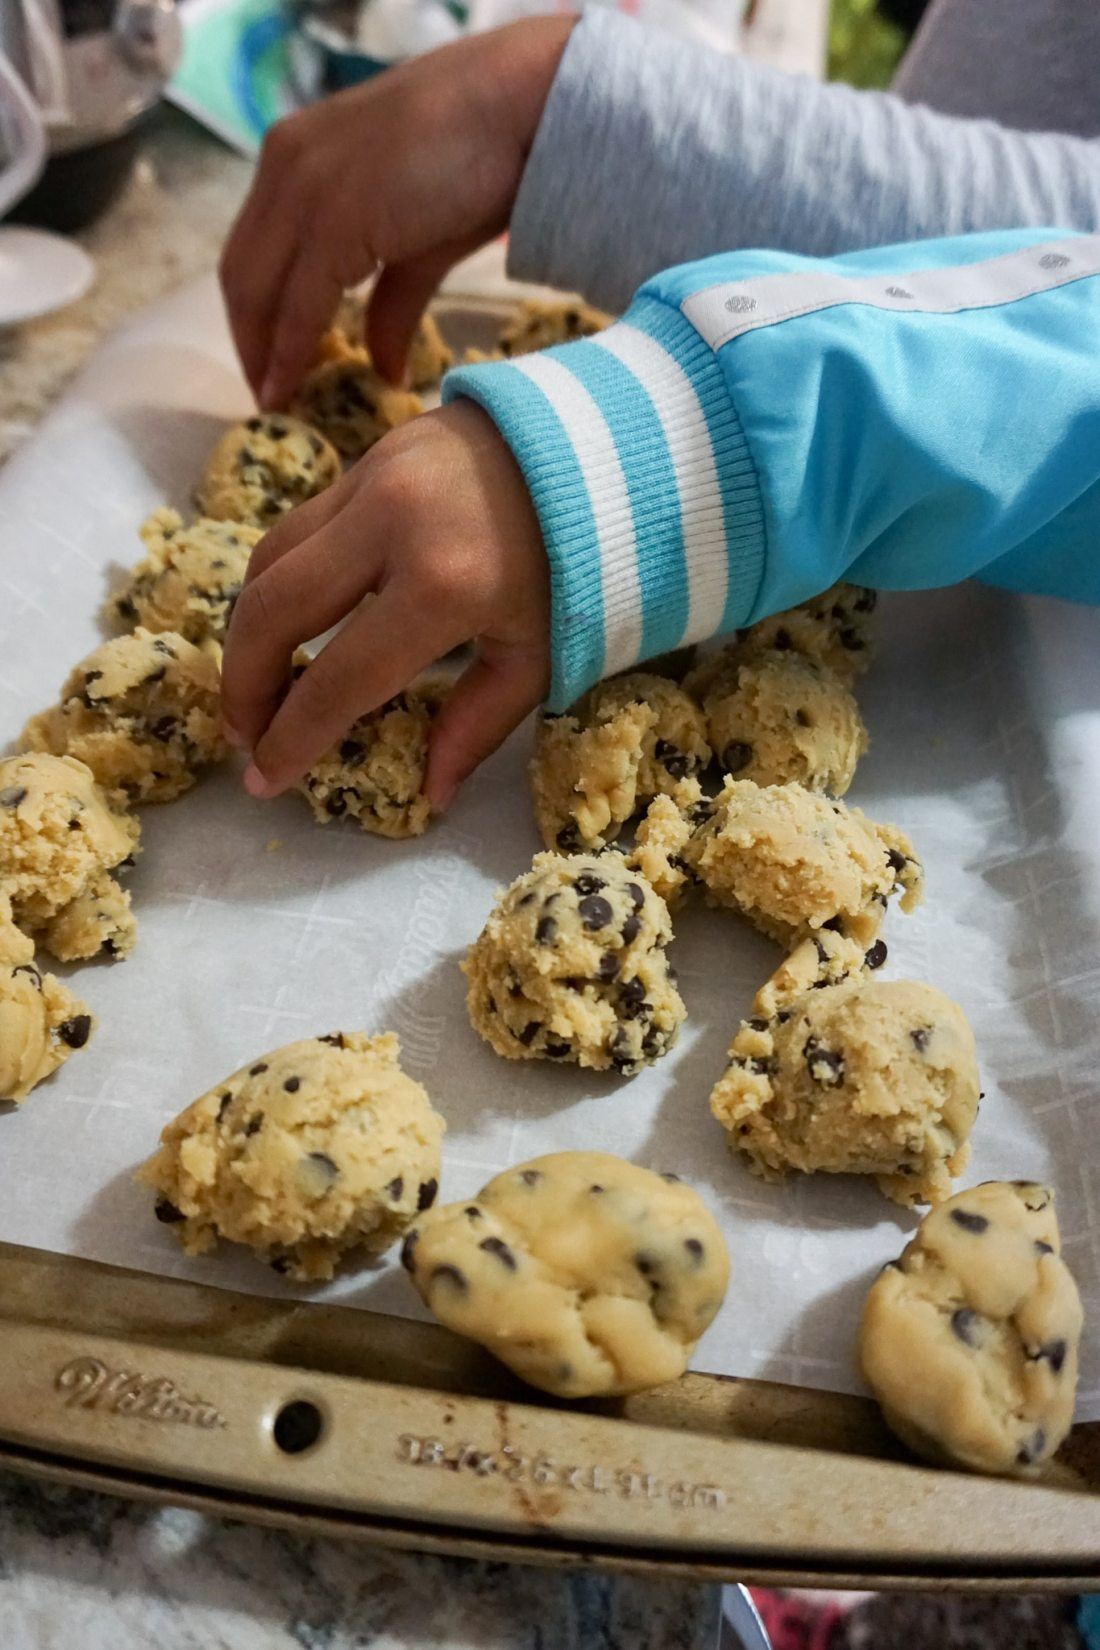 The Future is In Good Hands Making Cookies. Learn more about how we baked cookies to bring our community together.